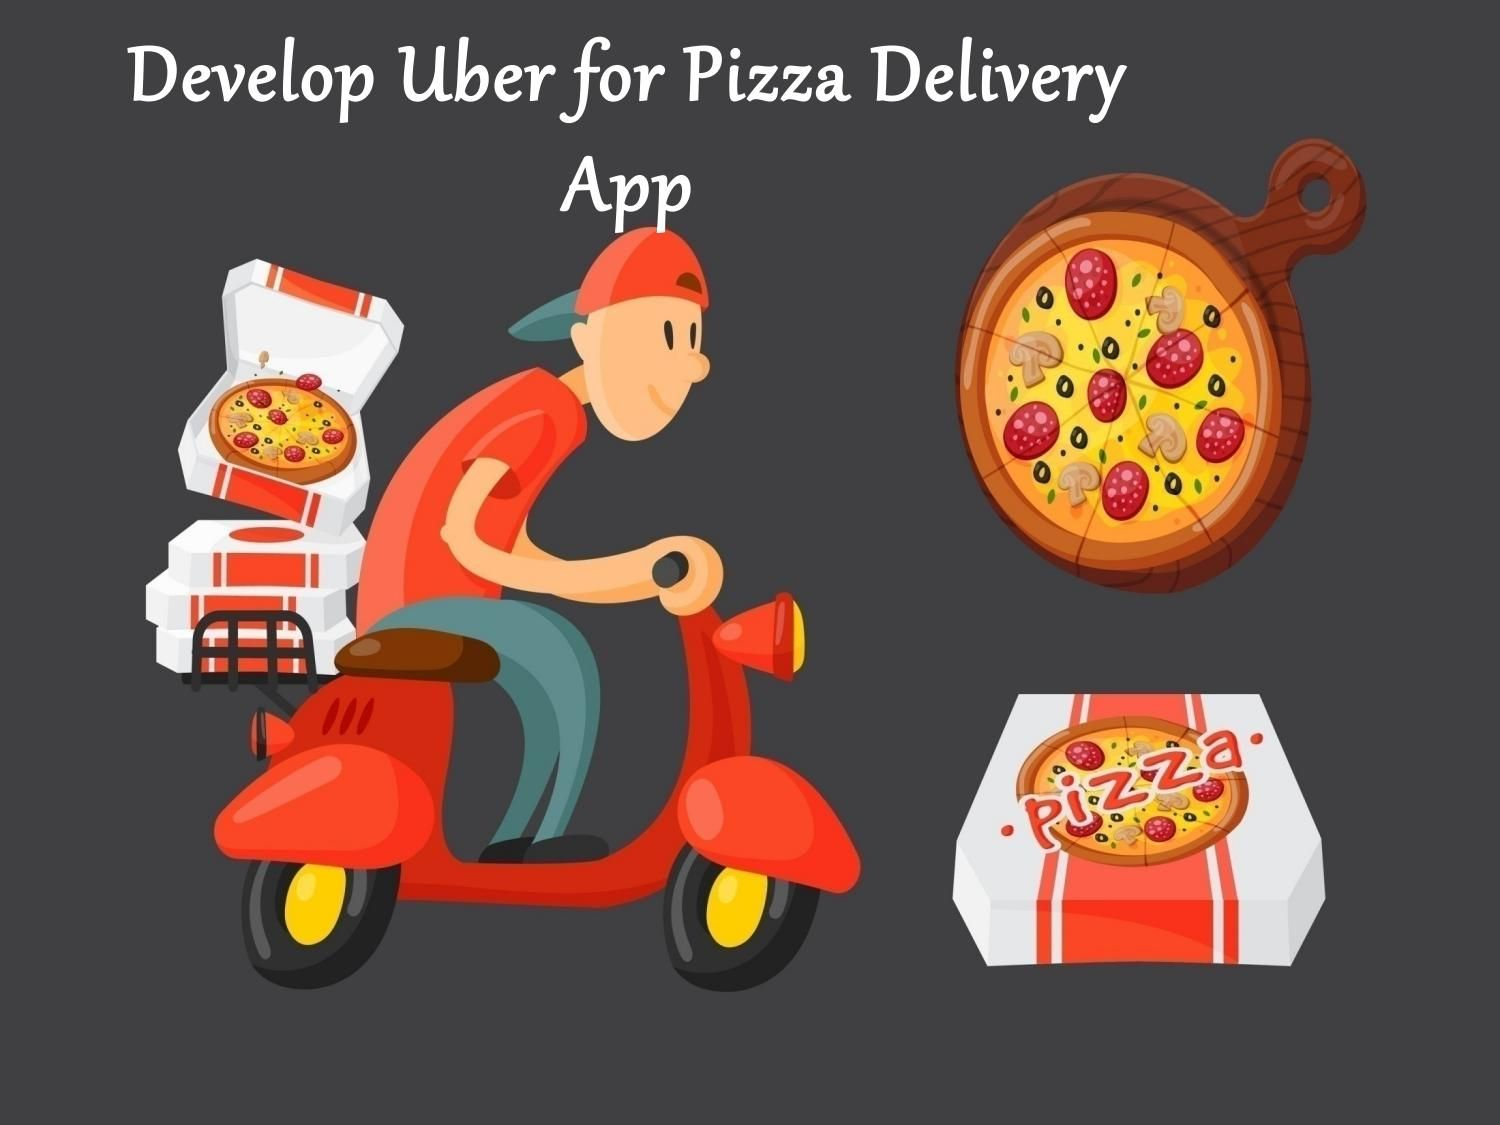 Develop uber for pizza delivery app Pizza delivery app